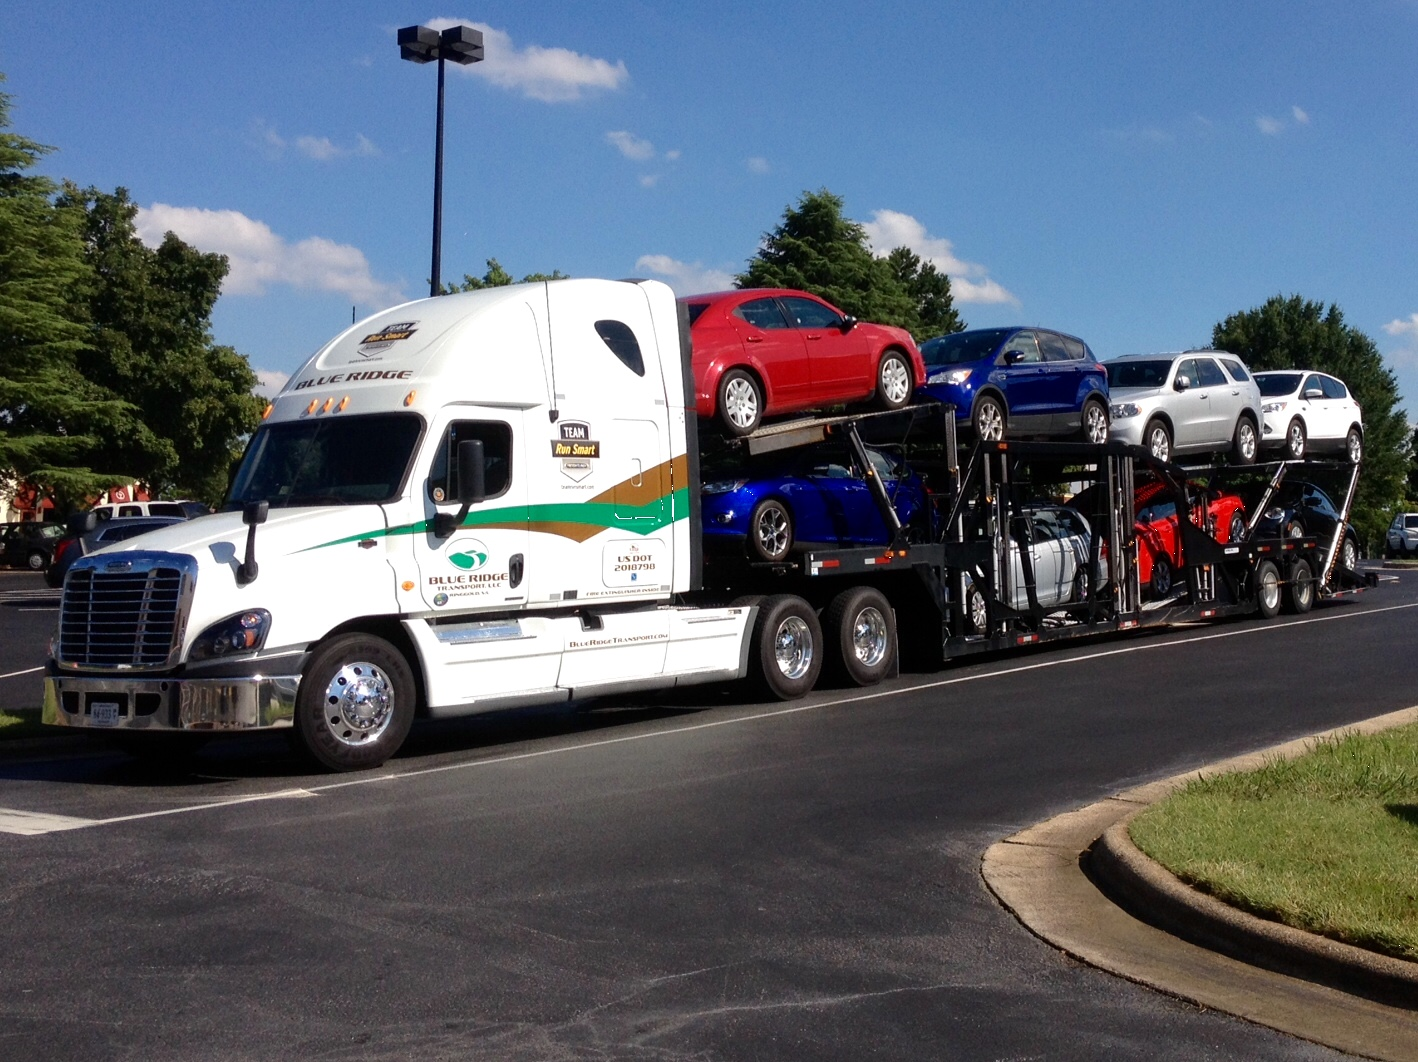 Team Run Smart - So you want to be a car hauler?